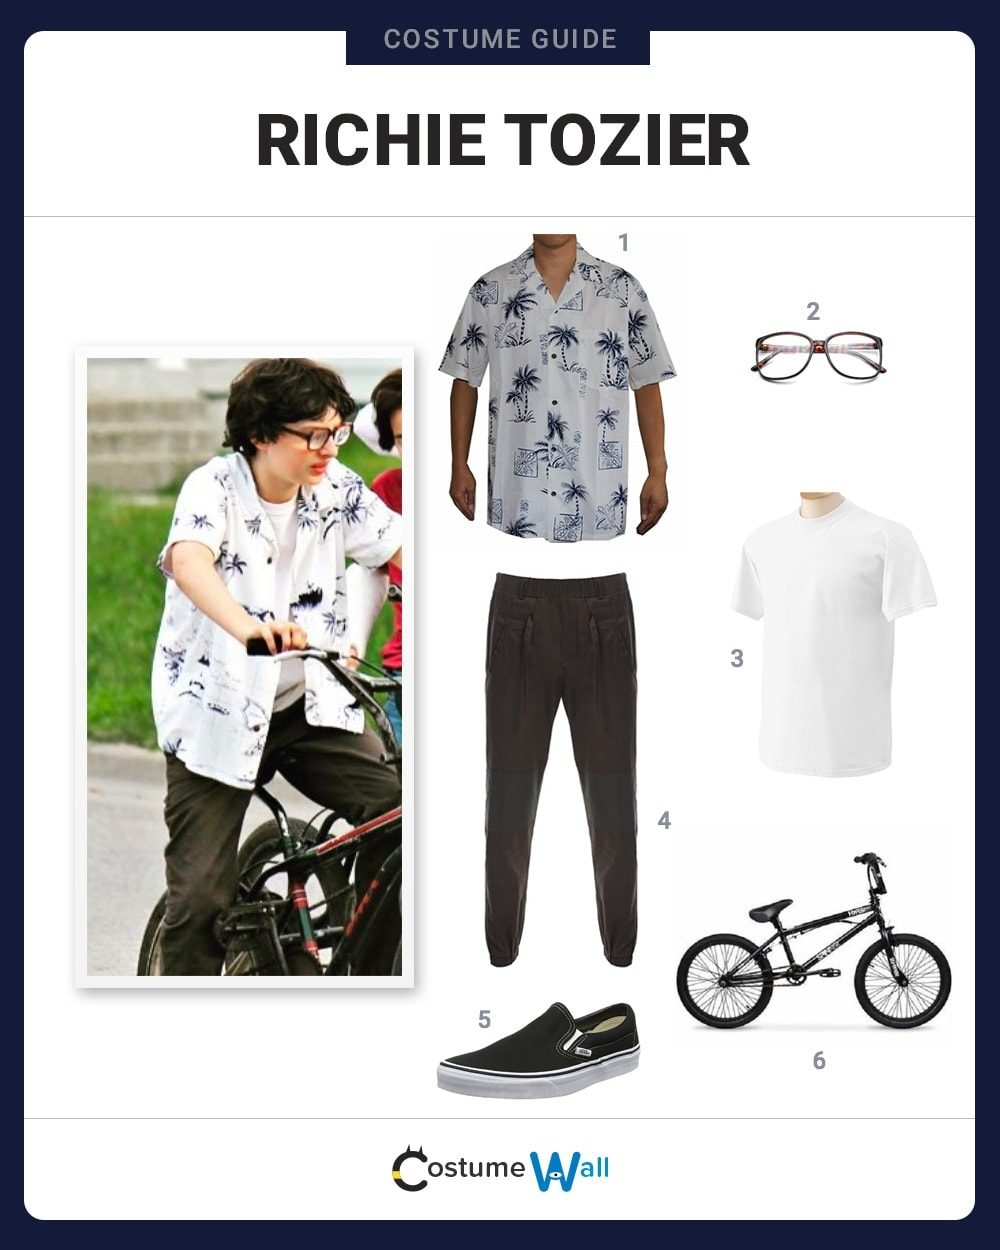 Richie Tozier Costume Guide